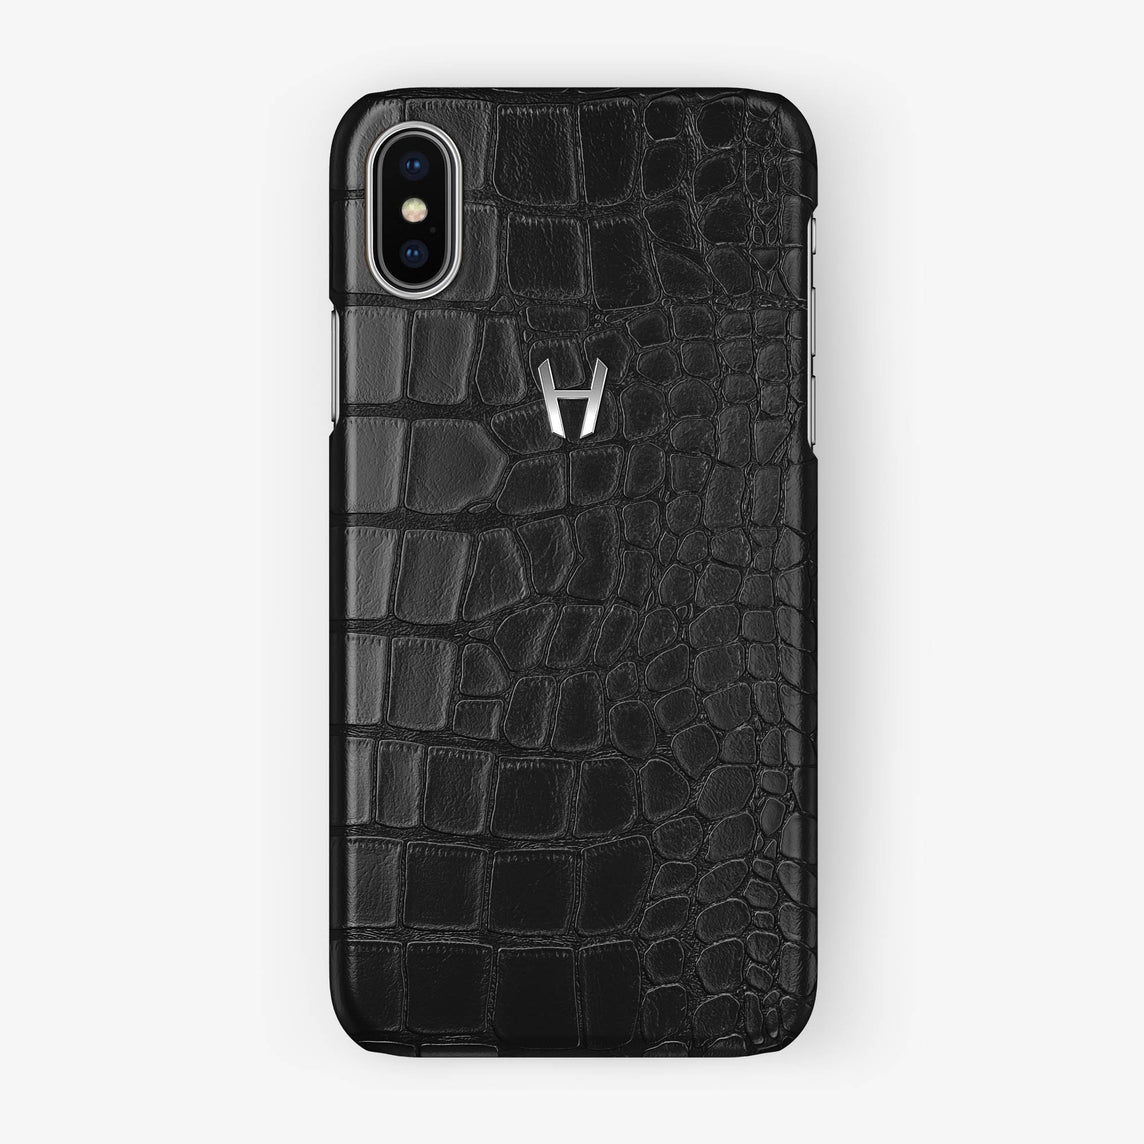 Alligator Case iPhone X/Xs | Black - Stainless Steel - Hadoro